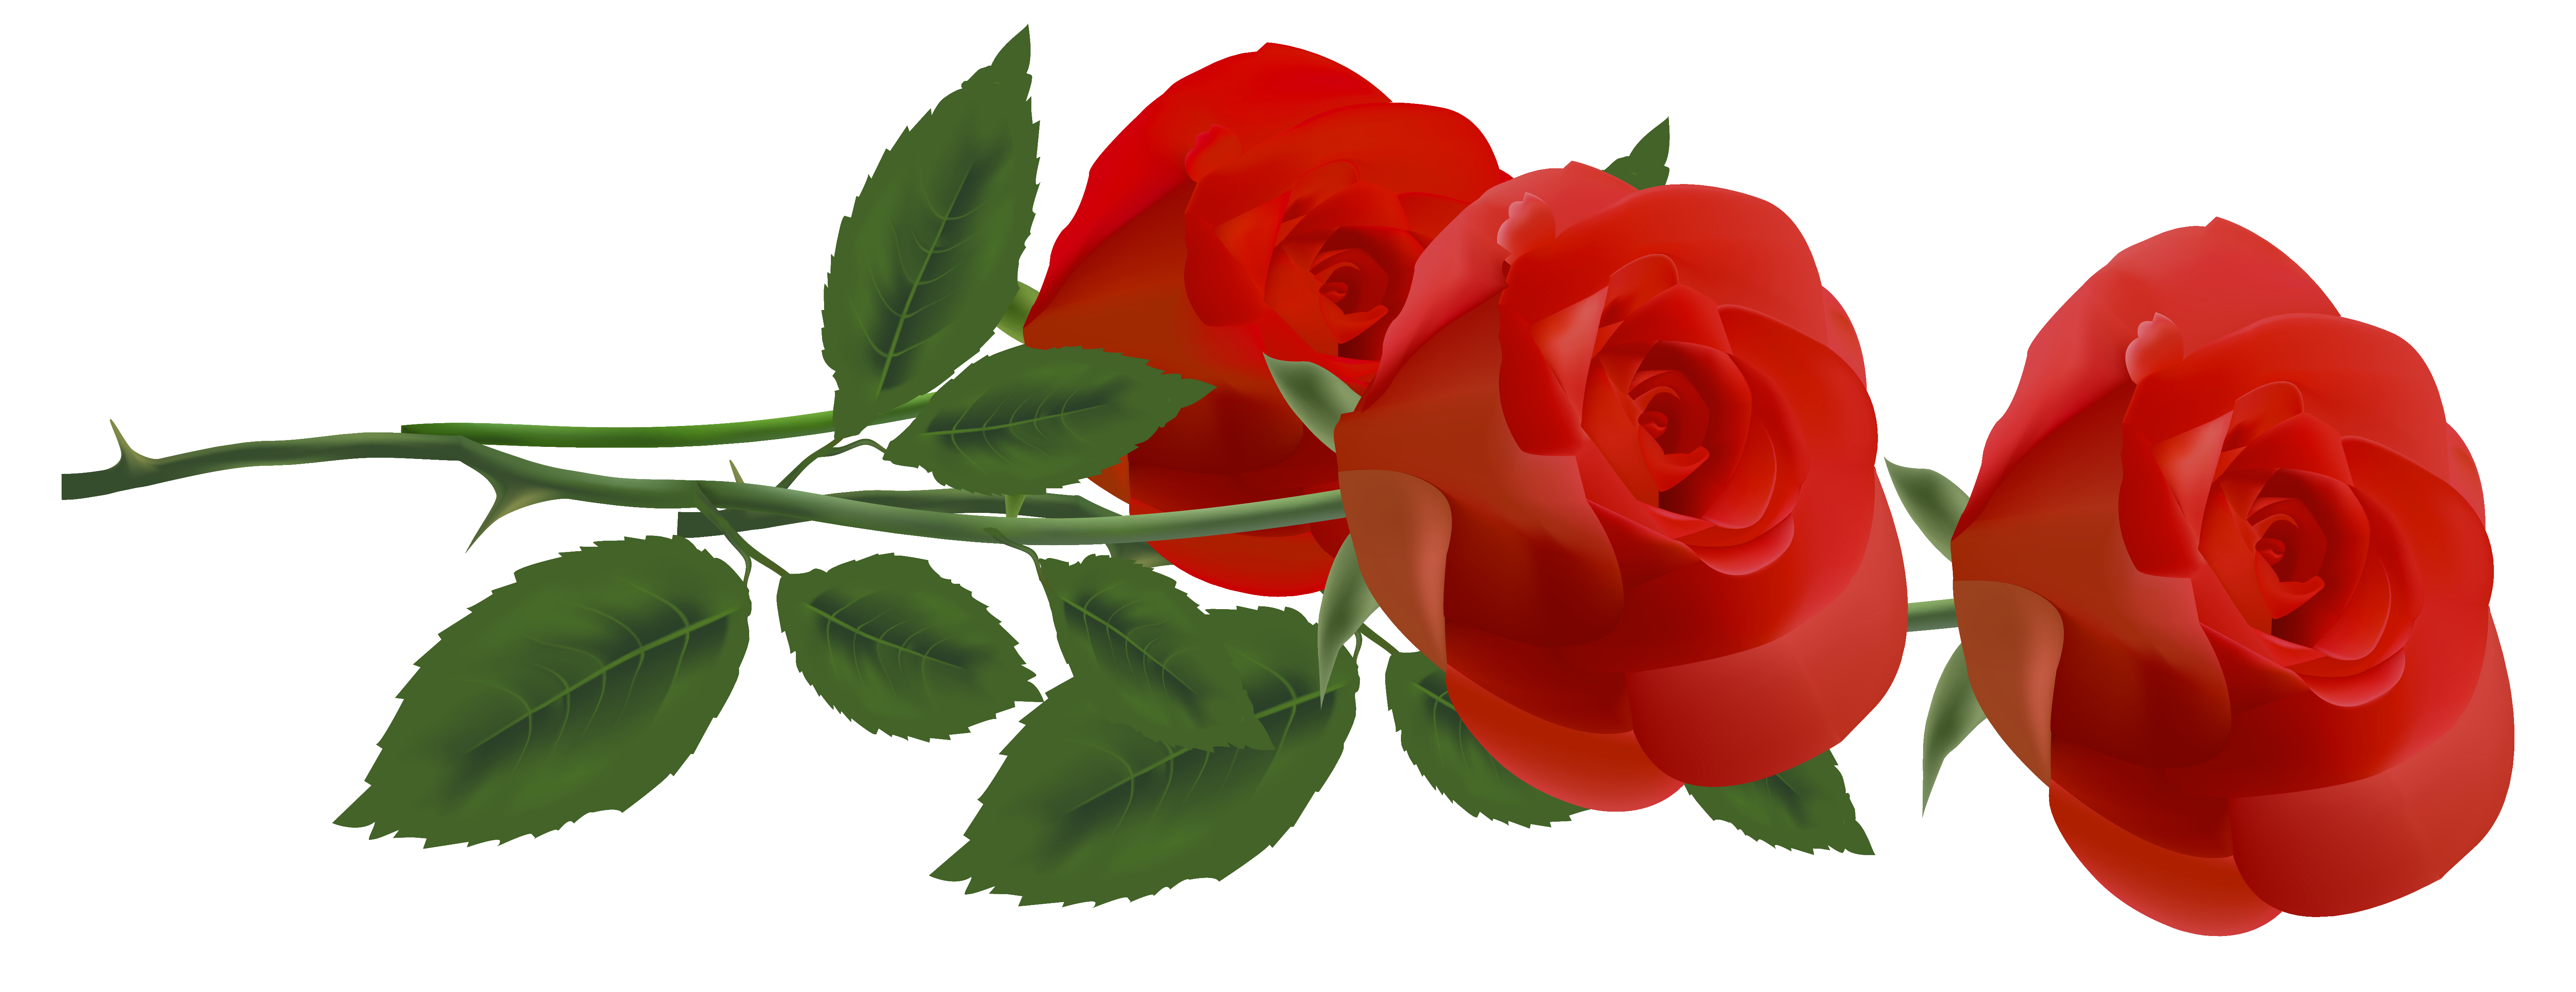 Roses Clipart Free   Free download on ClipArtMag